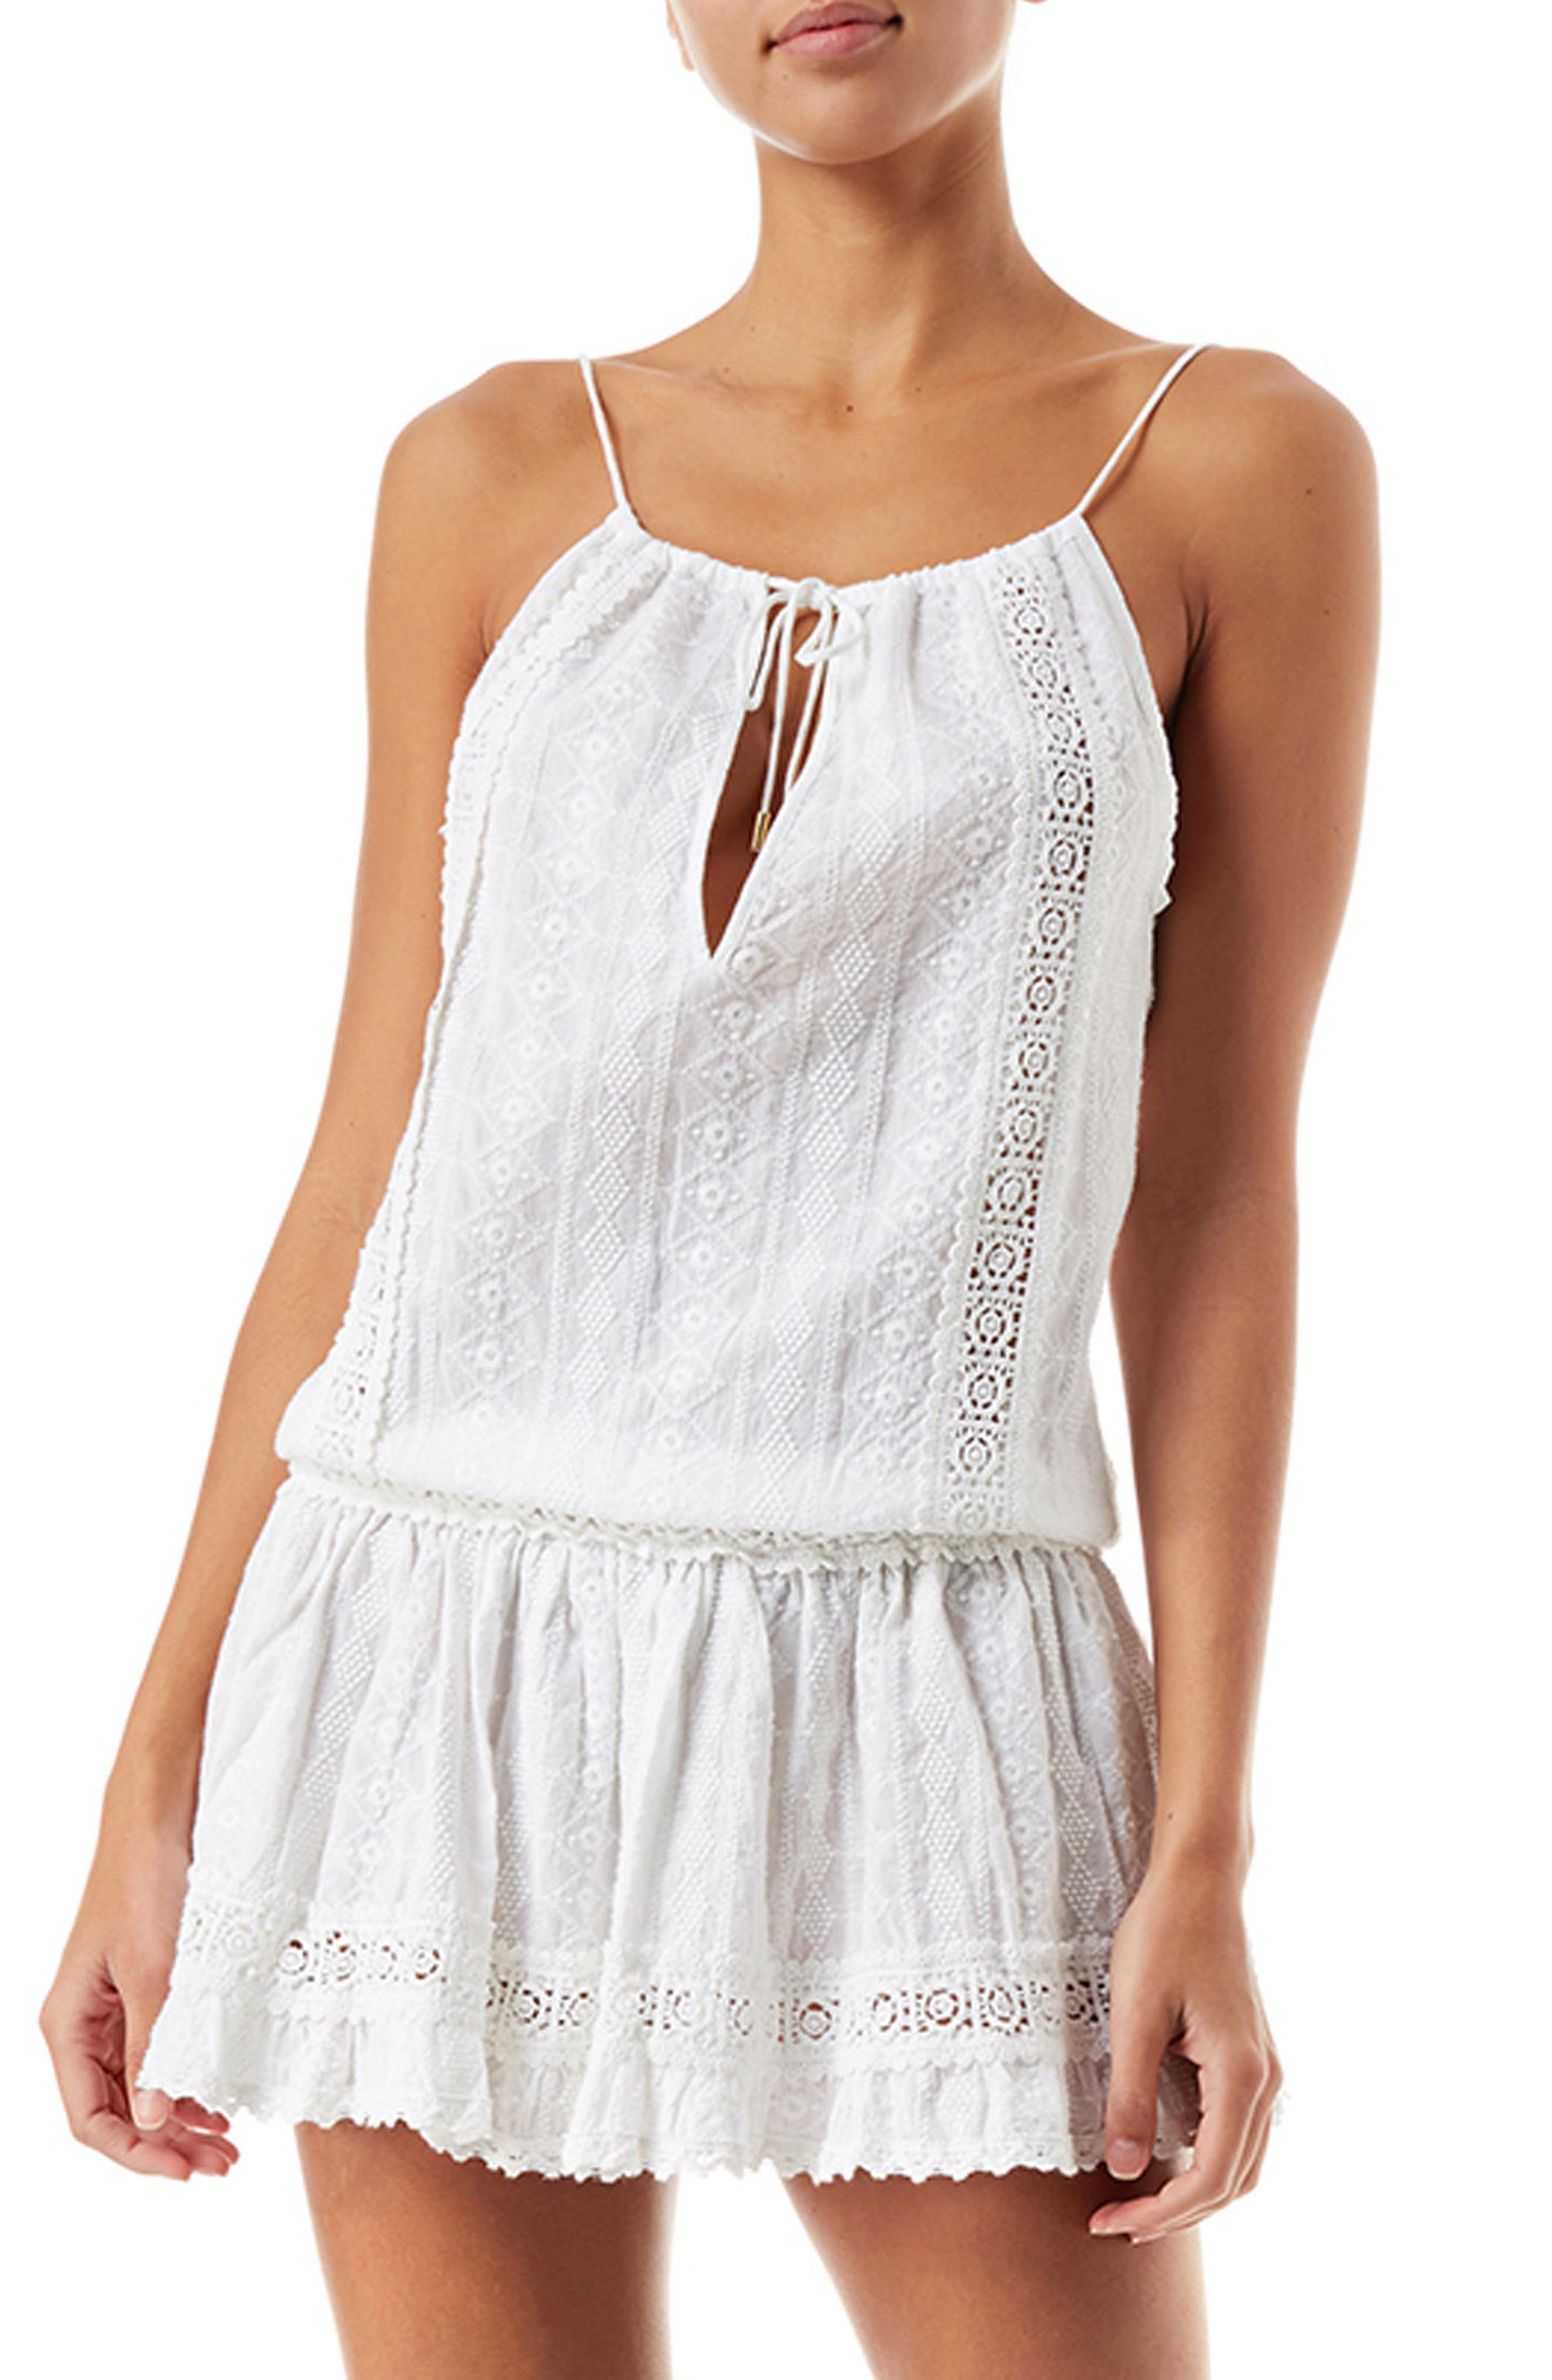 Chelsea Cover-Up Romper,                             Main thumbnail 1, color,                             White